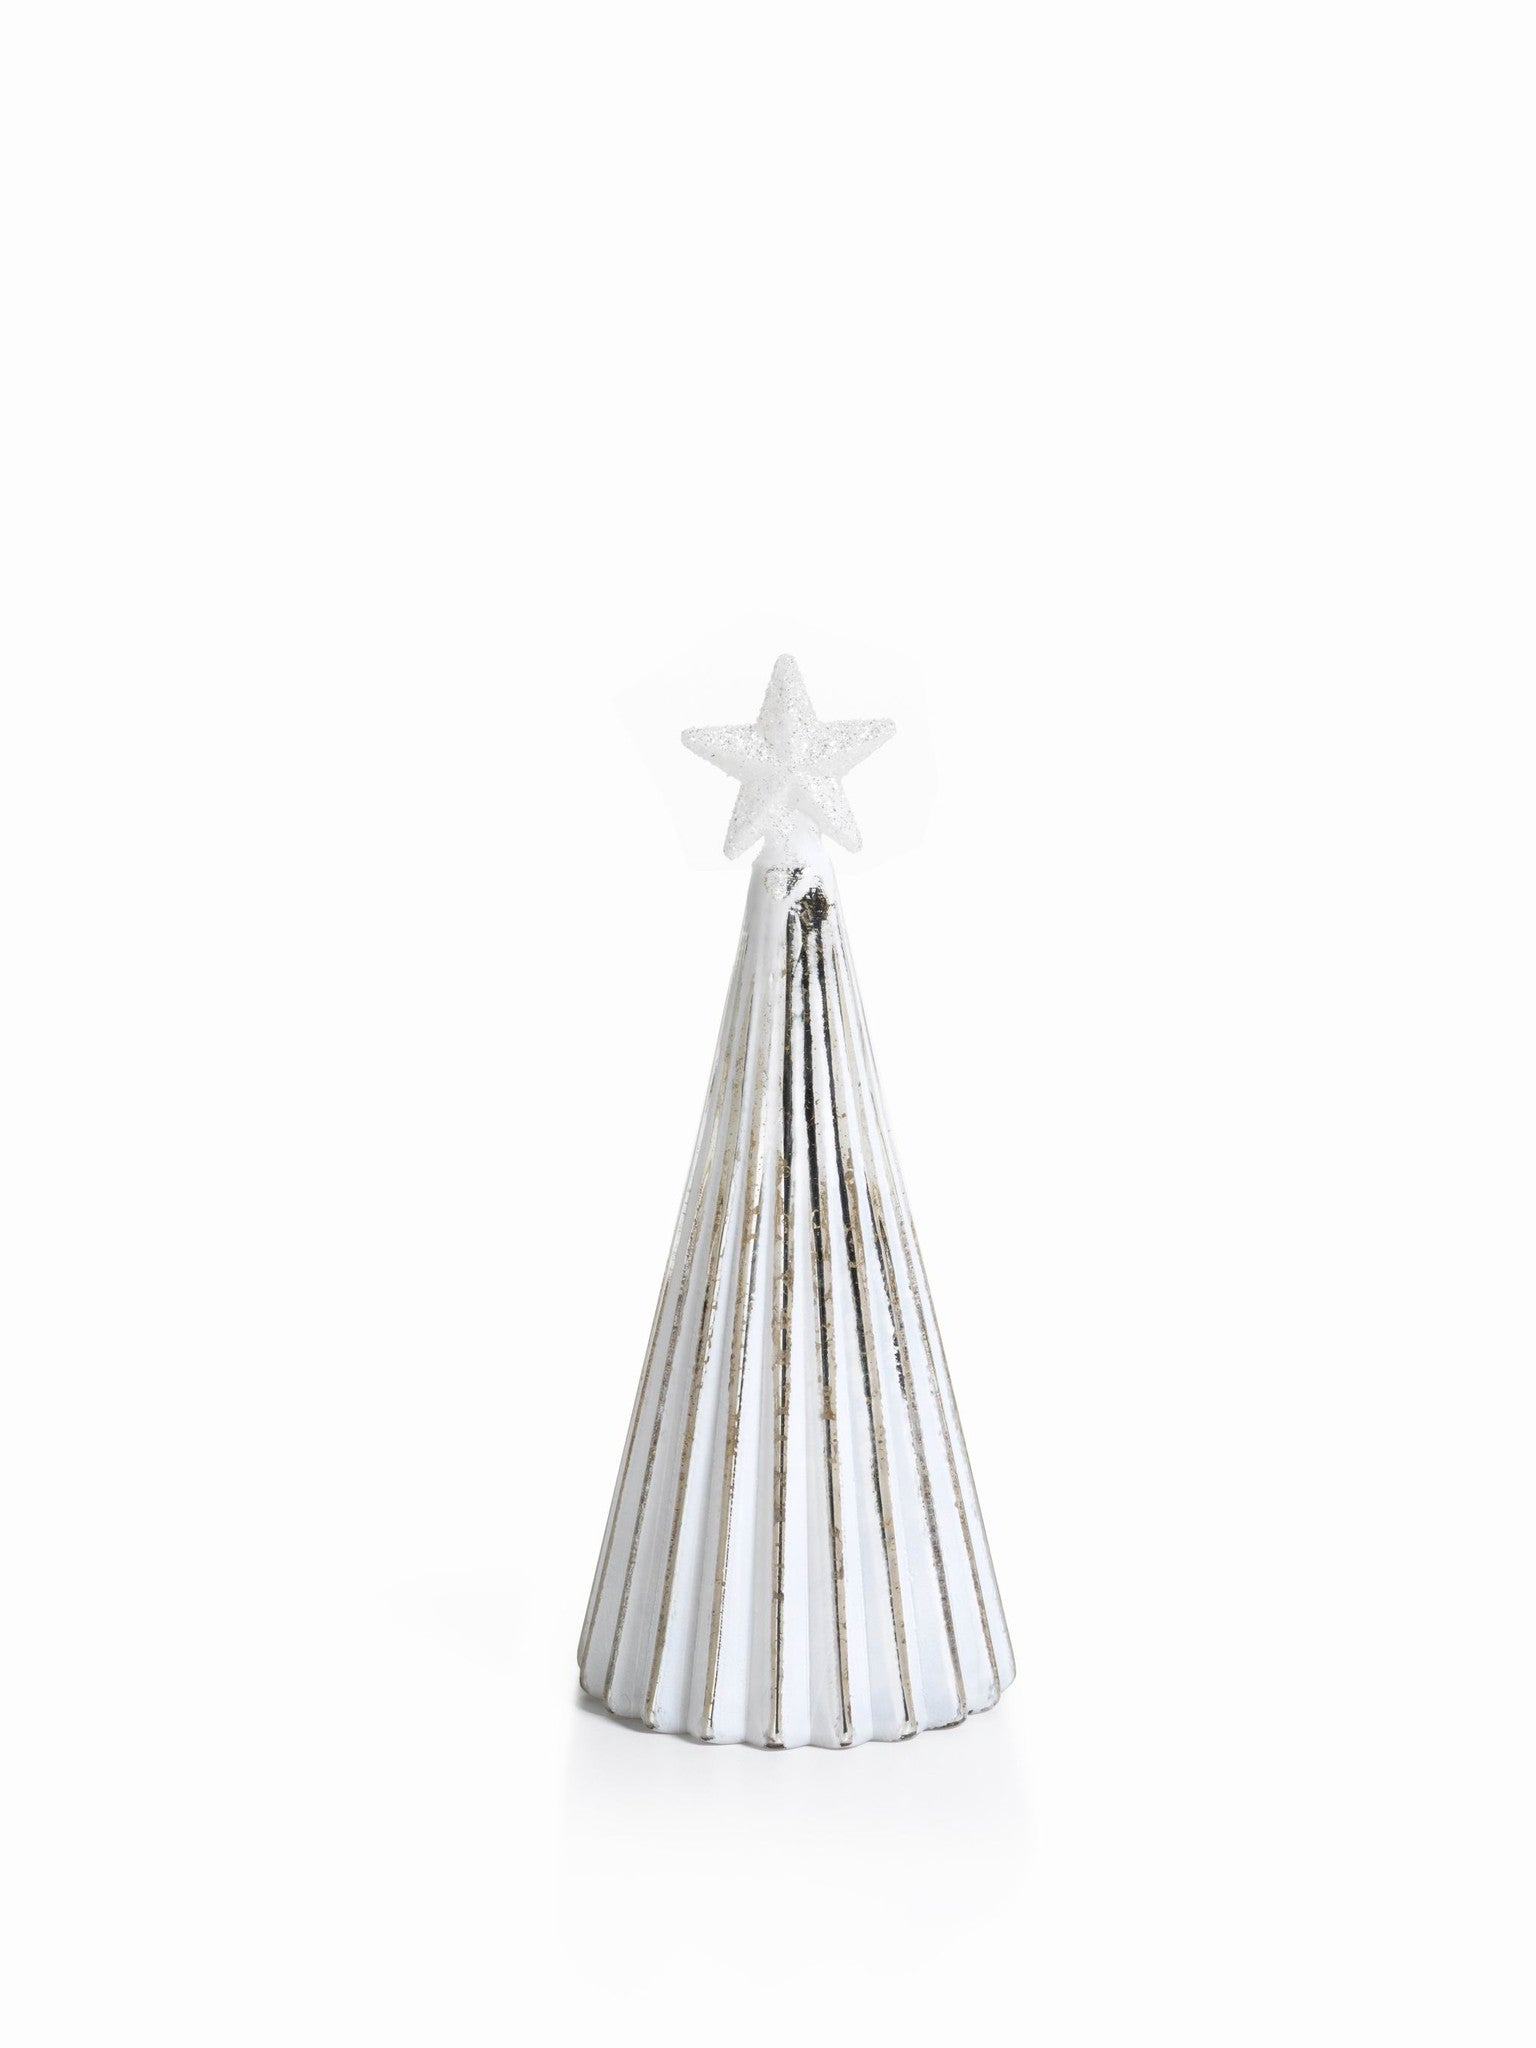 LED Glass Decorative Tree - Silver - Set of 6 - Medium / Straight Line - CARLYLE AVENUE - 12